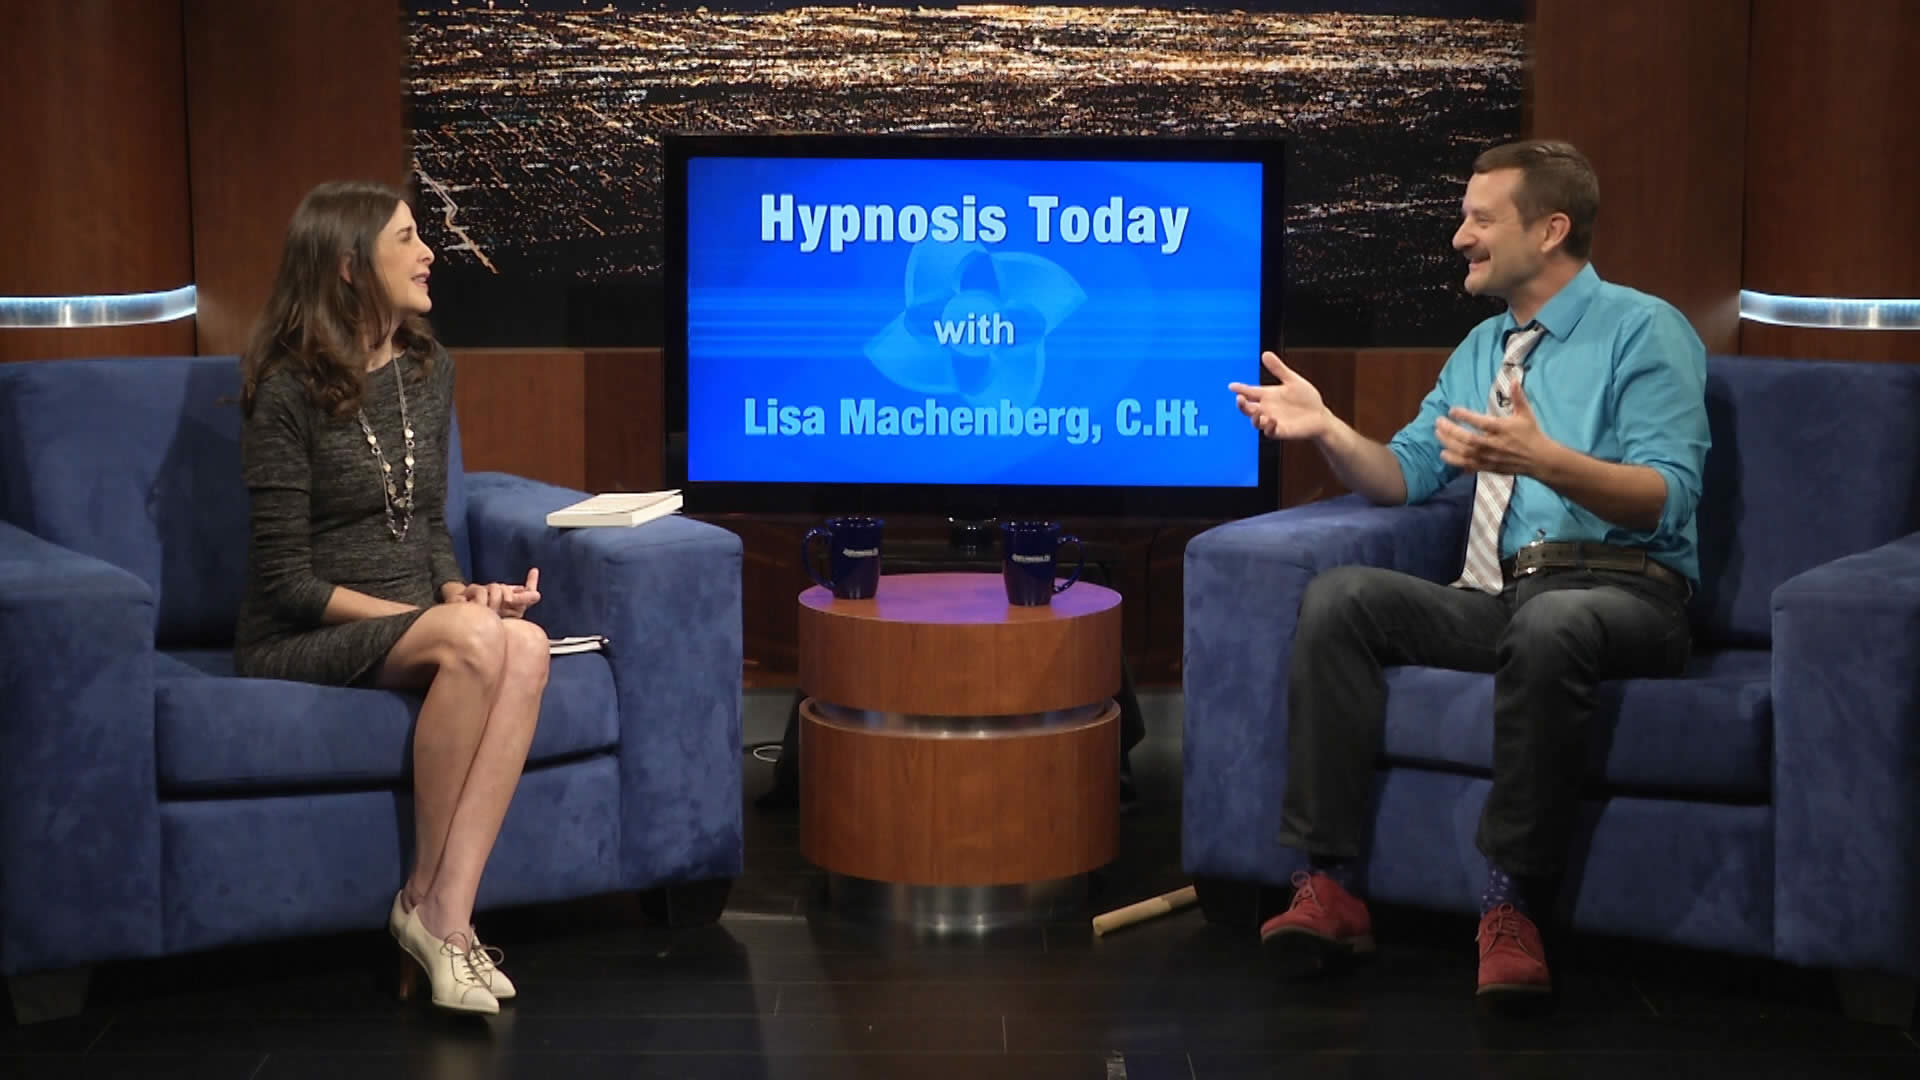 Does motivational hypnosis work? - Quora